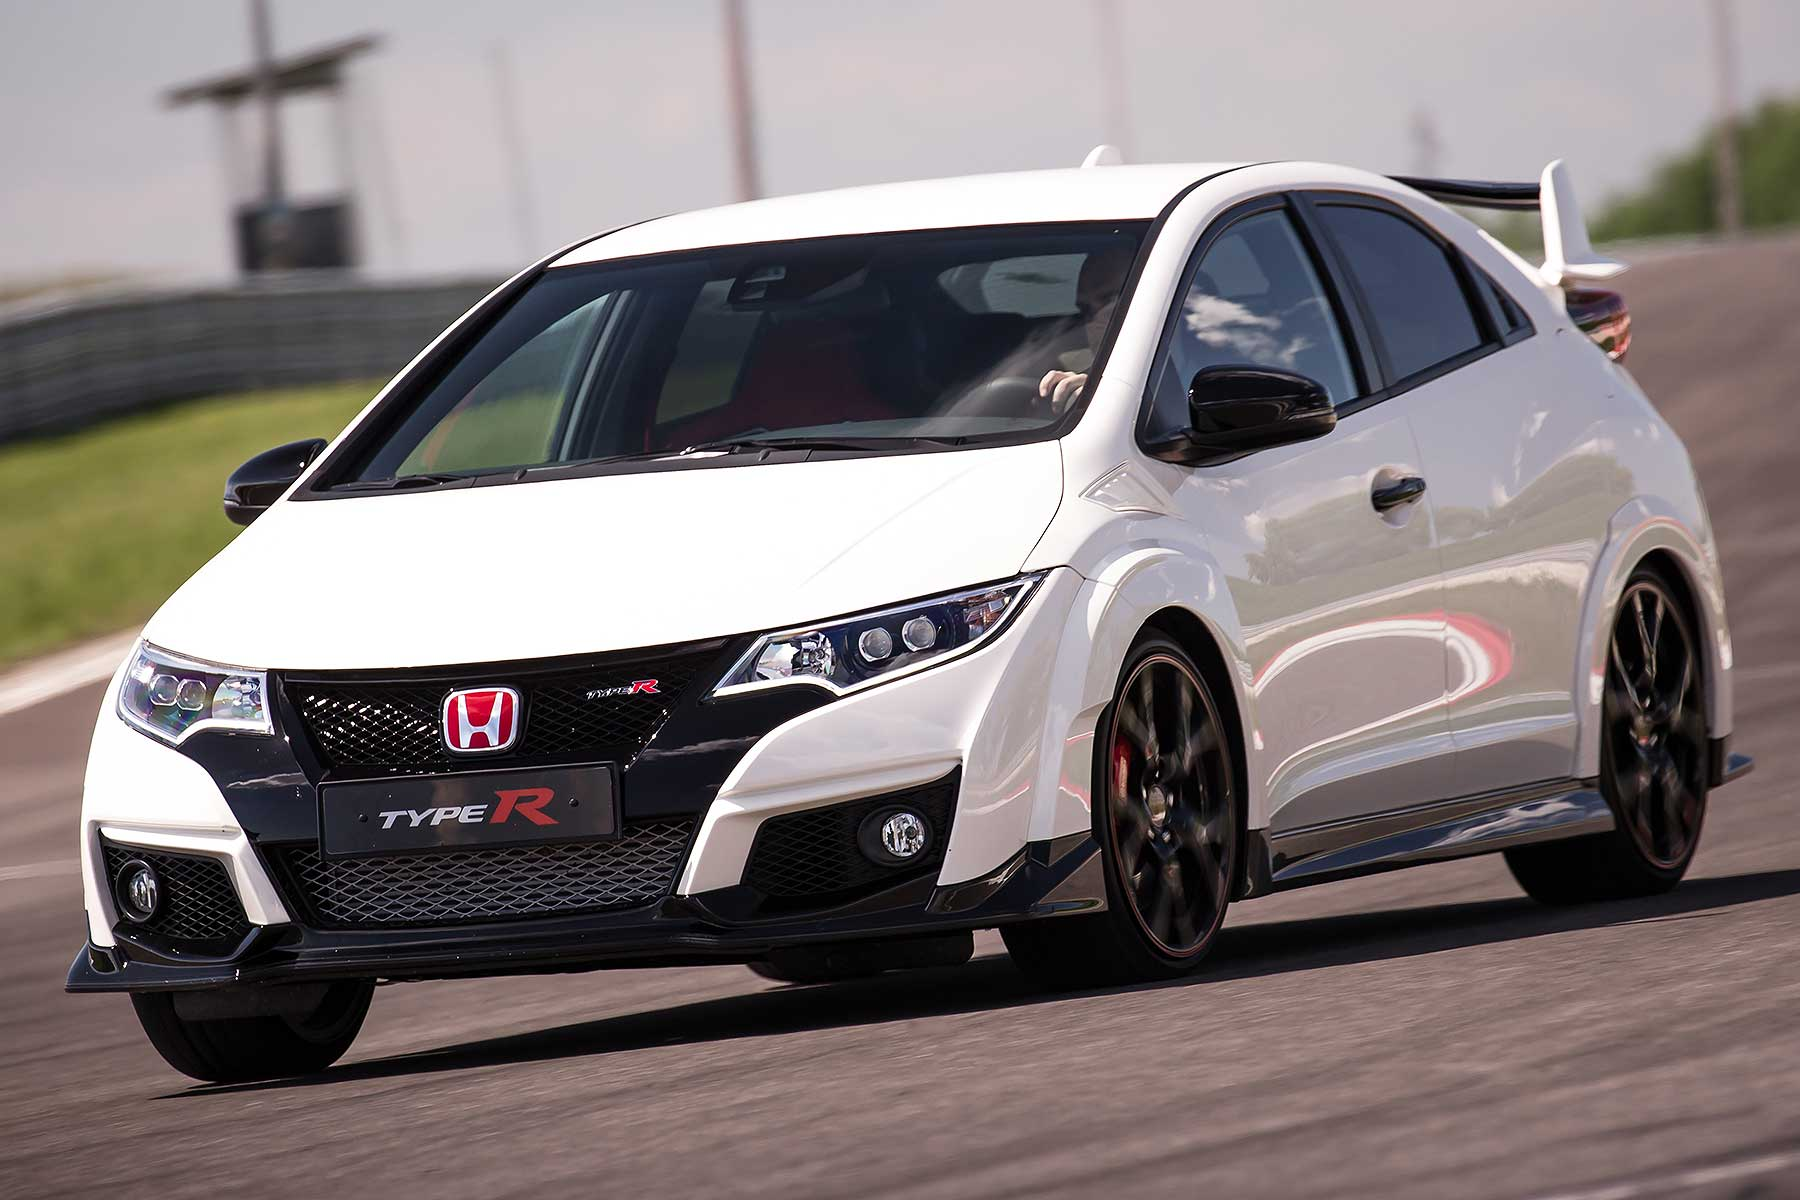 honda civic type r review 2015 first drive motoring. Black Bedroom Furniture Sets. Home Design Ideas